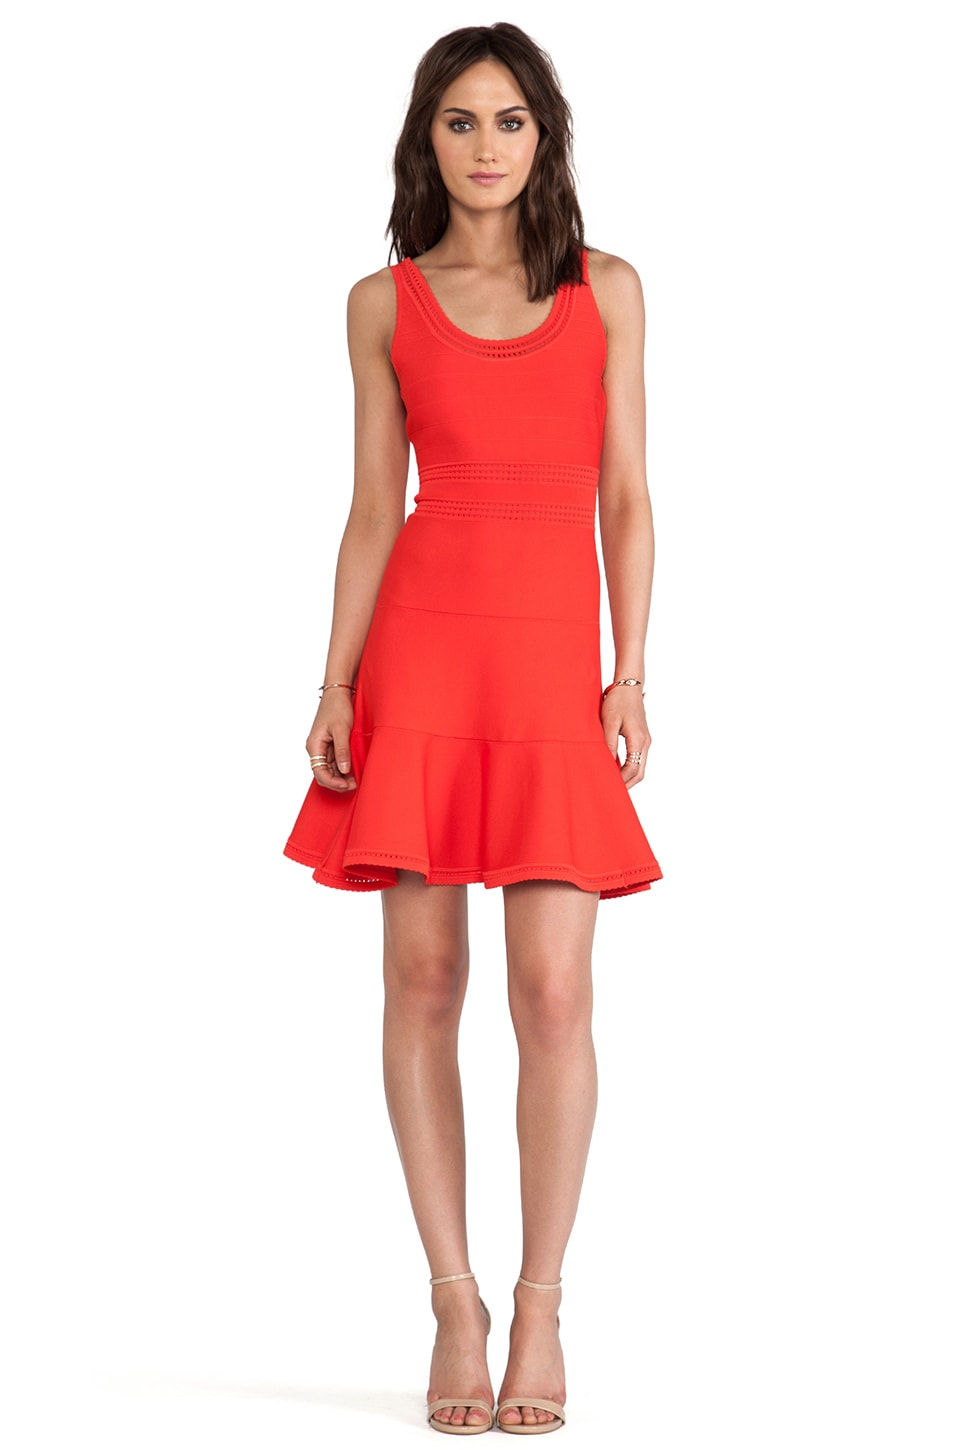 Diane von Furstenberg Perry Dress in Chilli Pepper